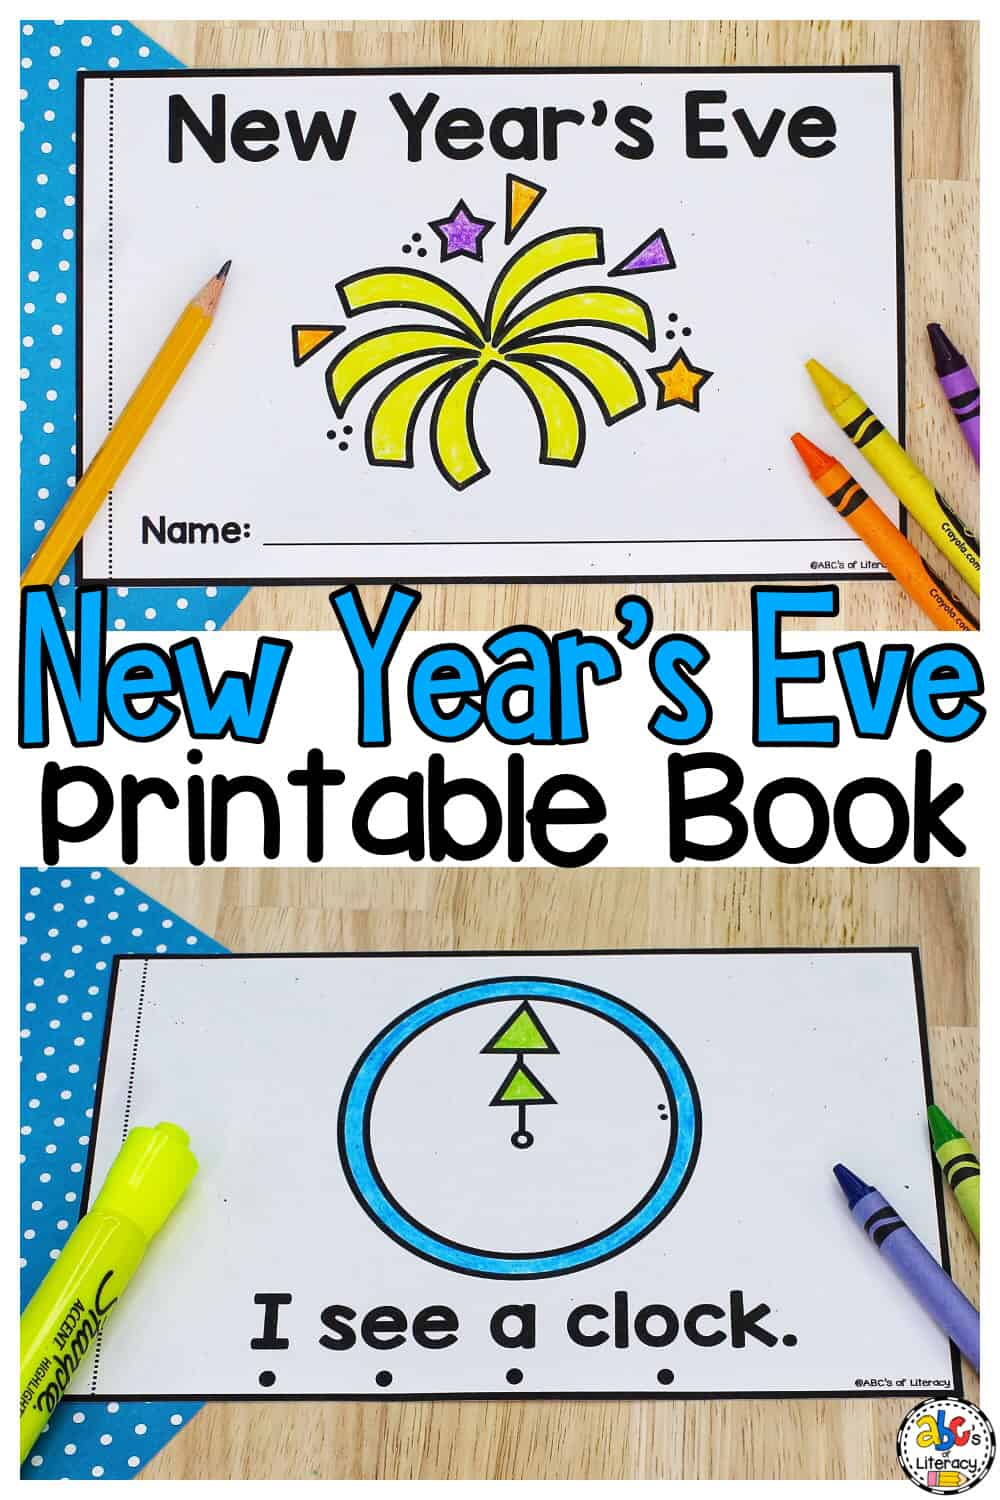 New Year's Eve Printable Book